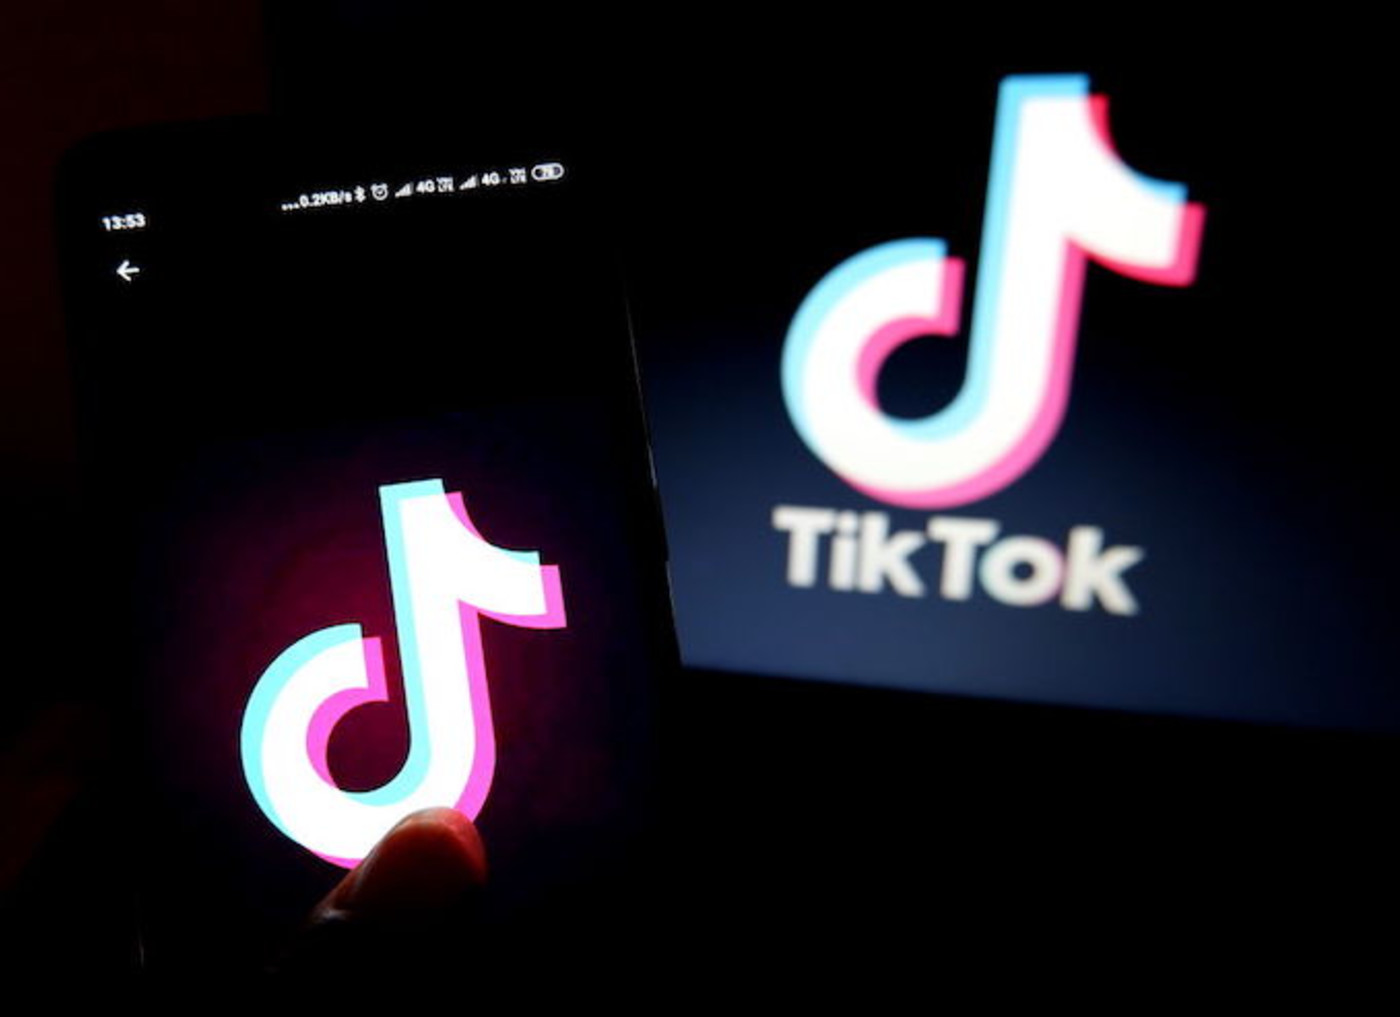 This is a picture of TikTok.